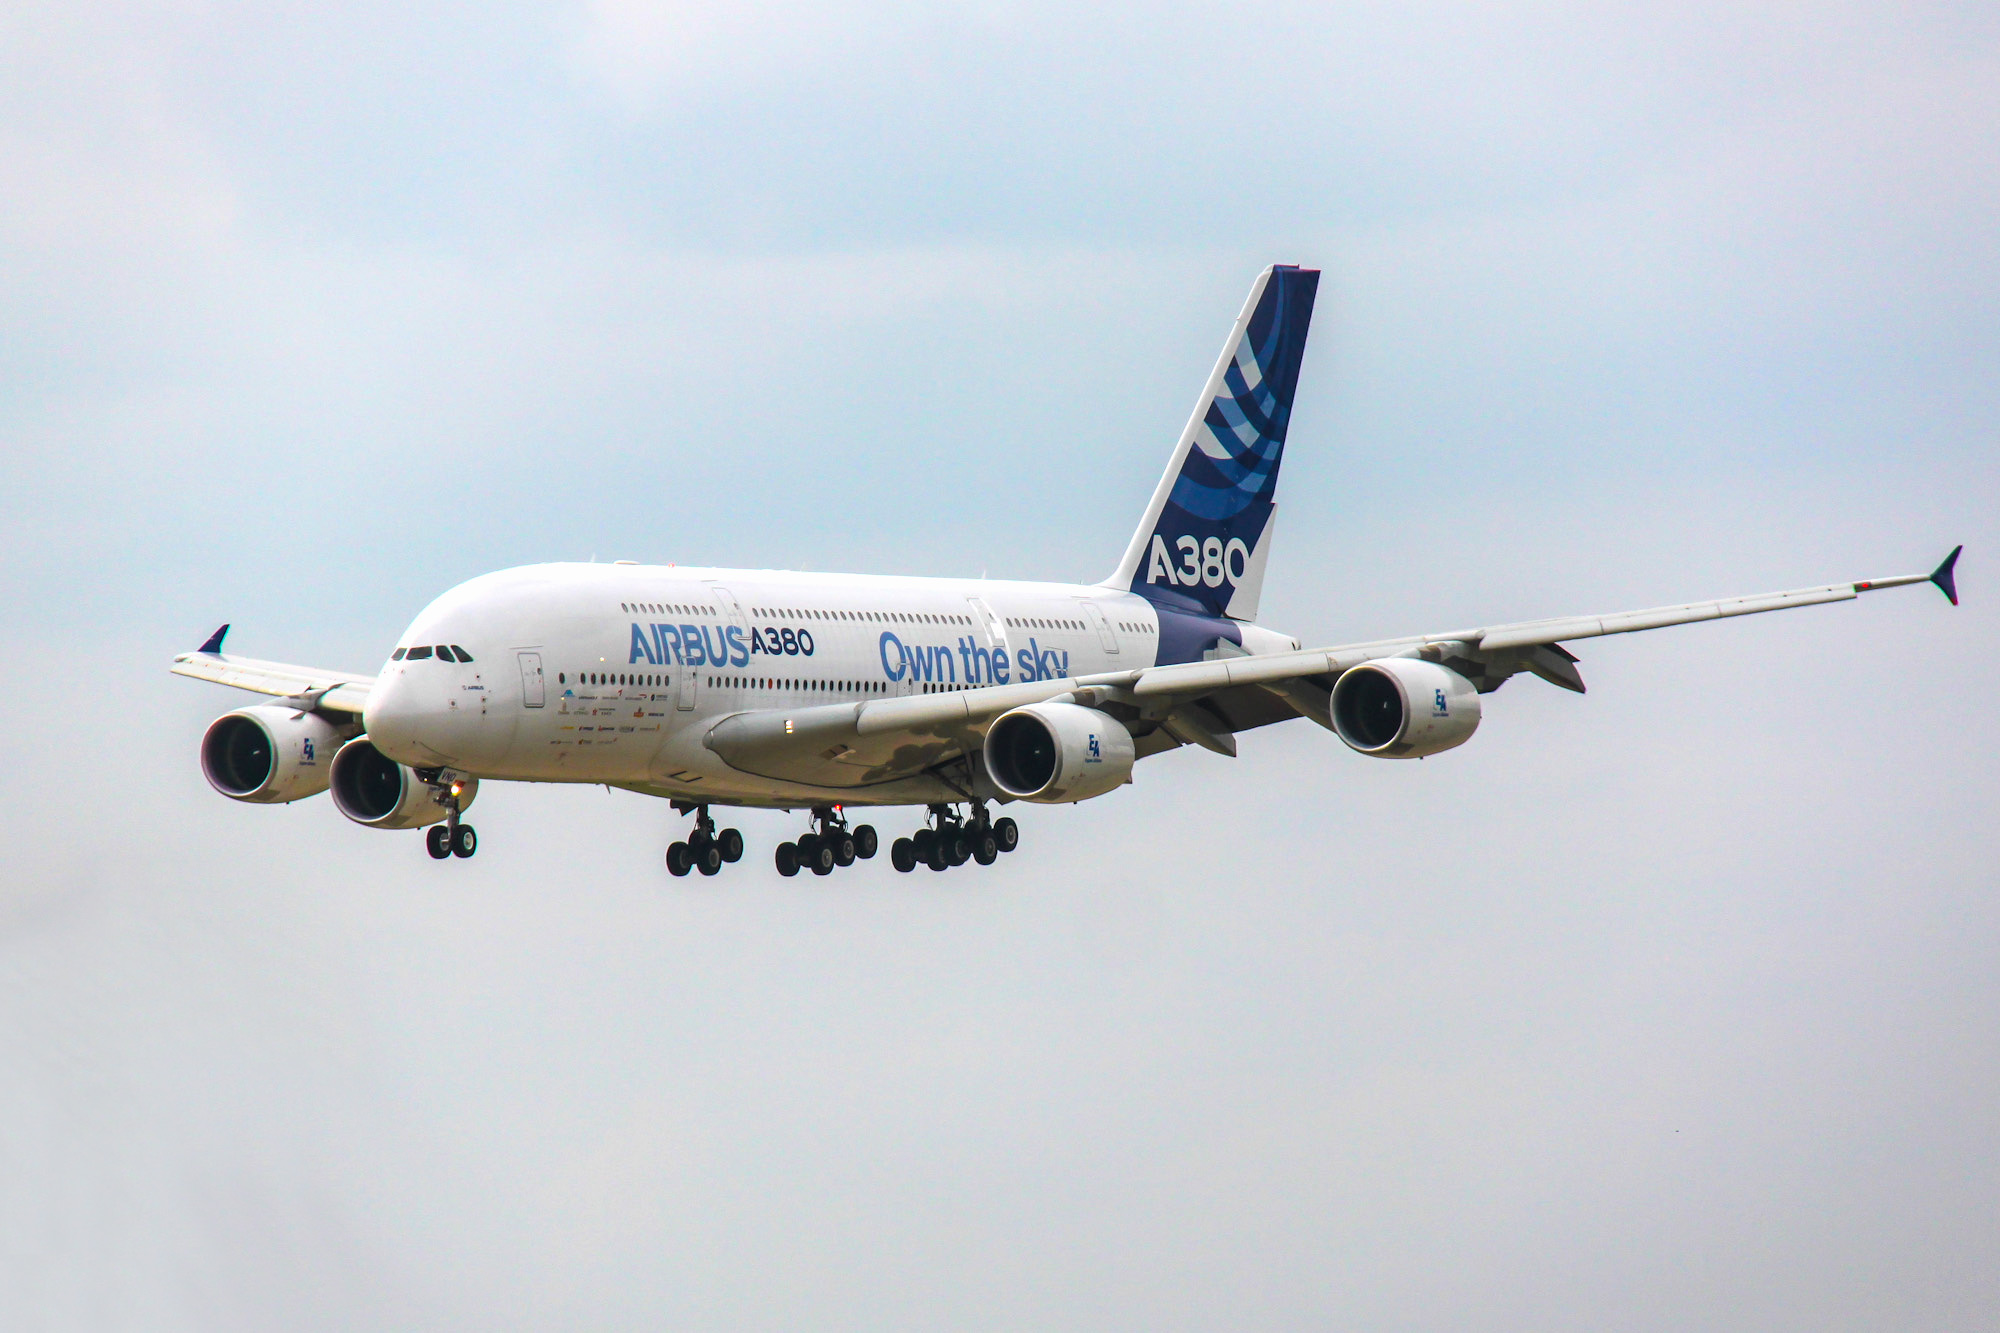 The Airbus A380 in flight at MAKS-2013